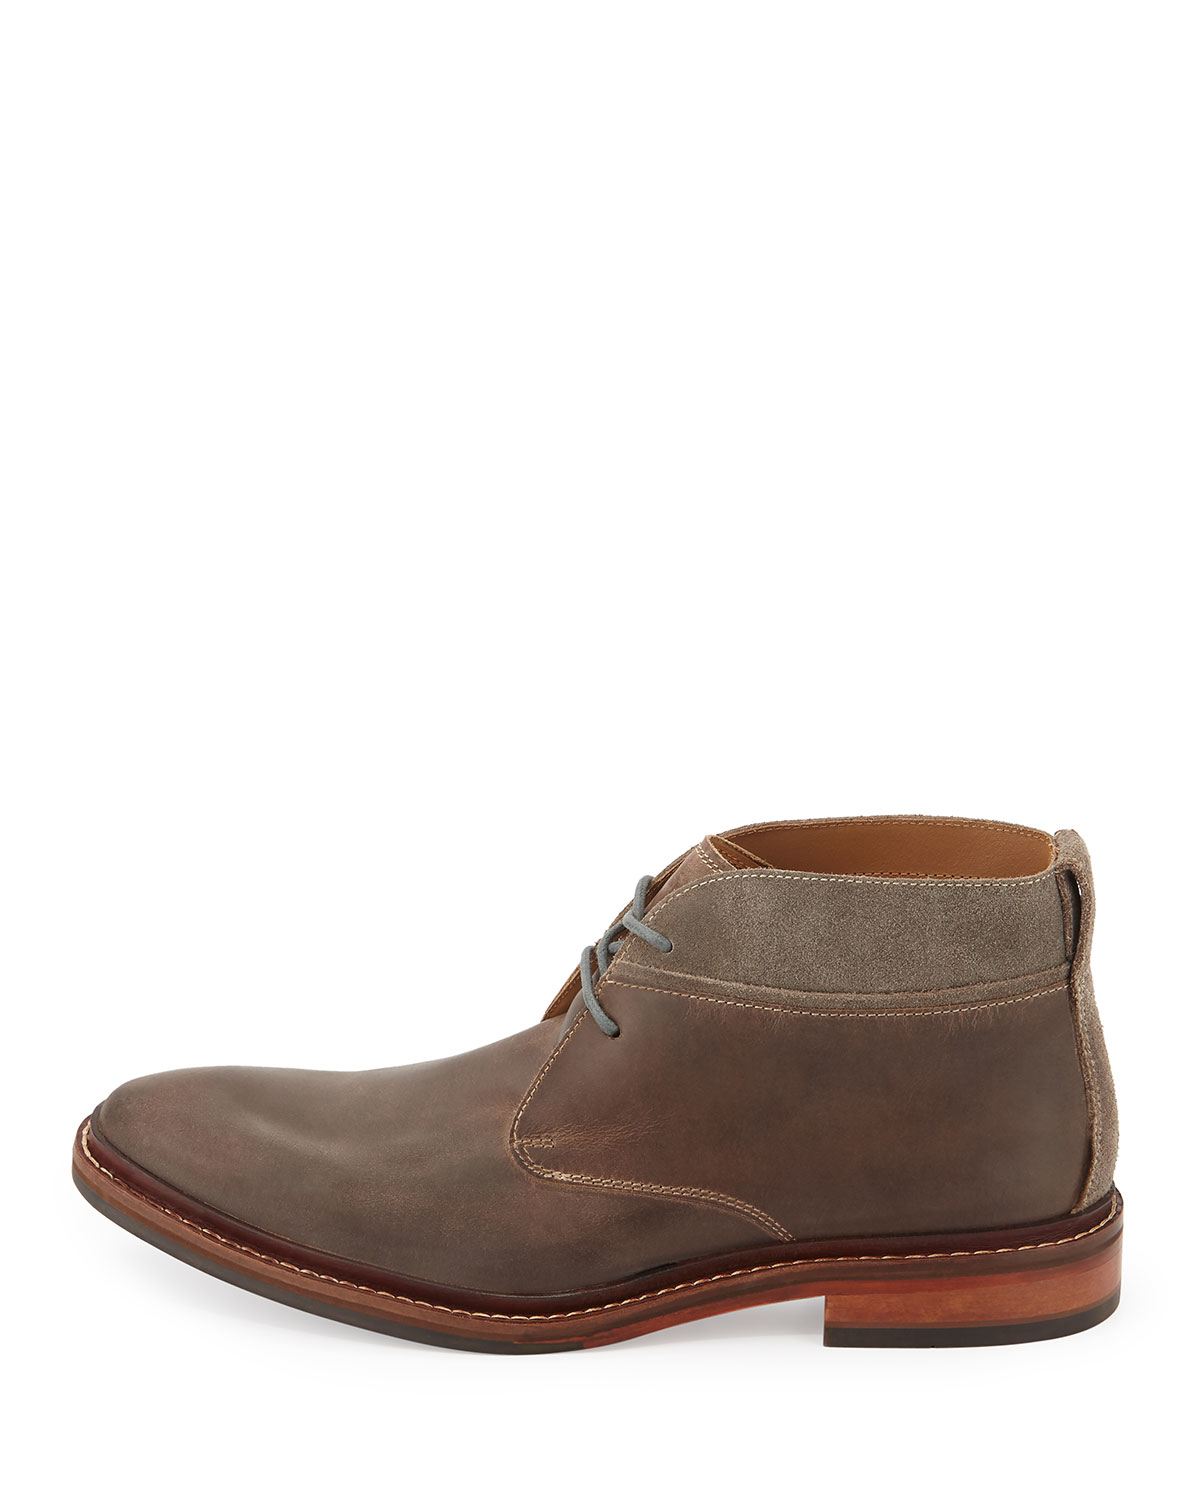 a9d6633324a Cole Haan Desert Boots - Best Picture Of Boot Imageco.Org